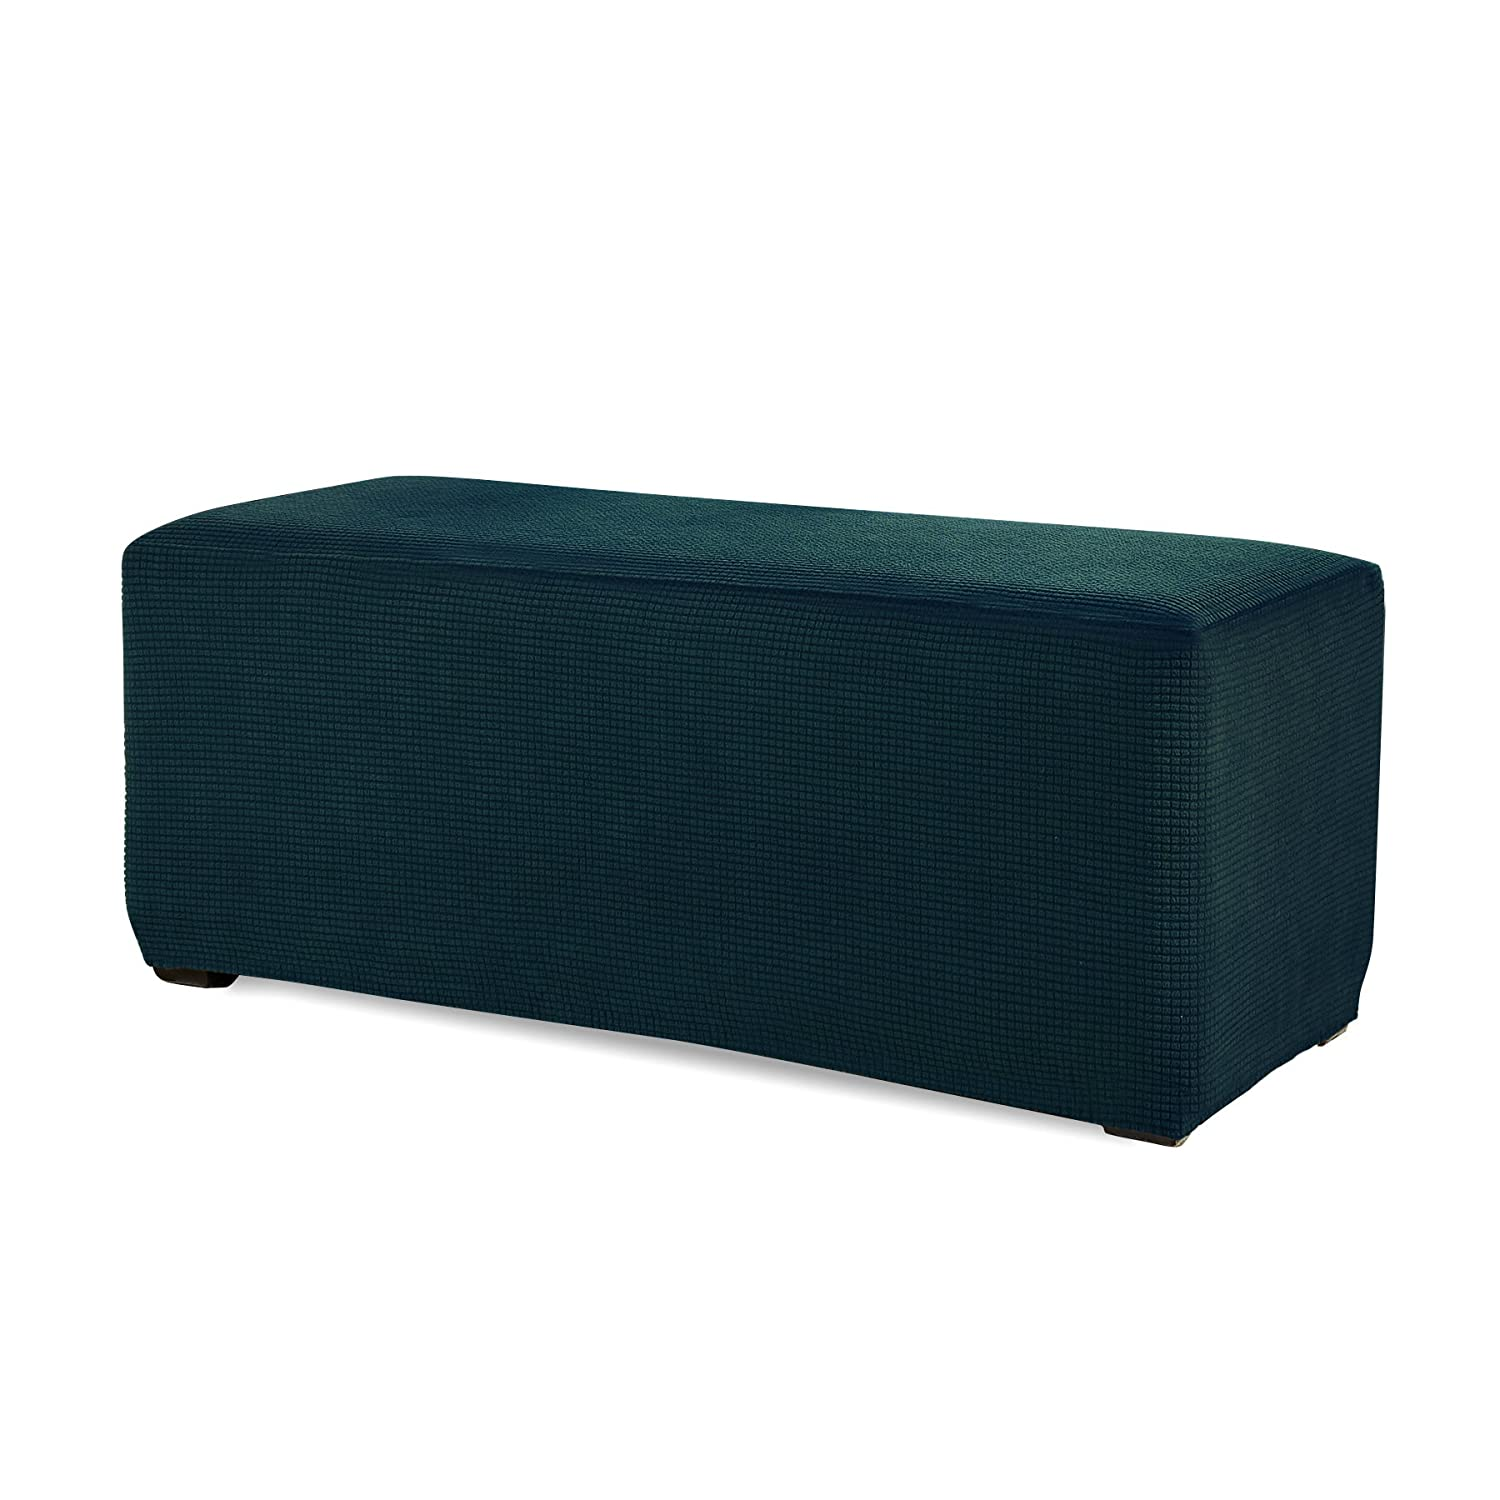 Subrtex Spandex Stretch Storage Ottoman Slipcover (Small, Chocolate) Shaoxing Yuanyi Household Co. Ltd. ottoman cover 5